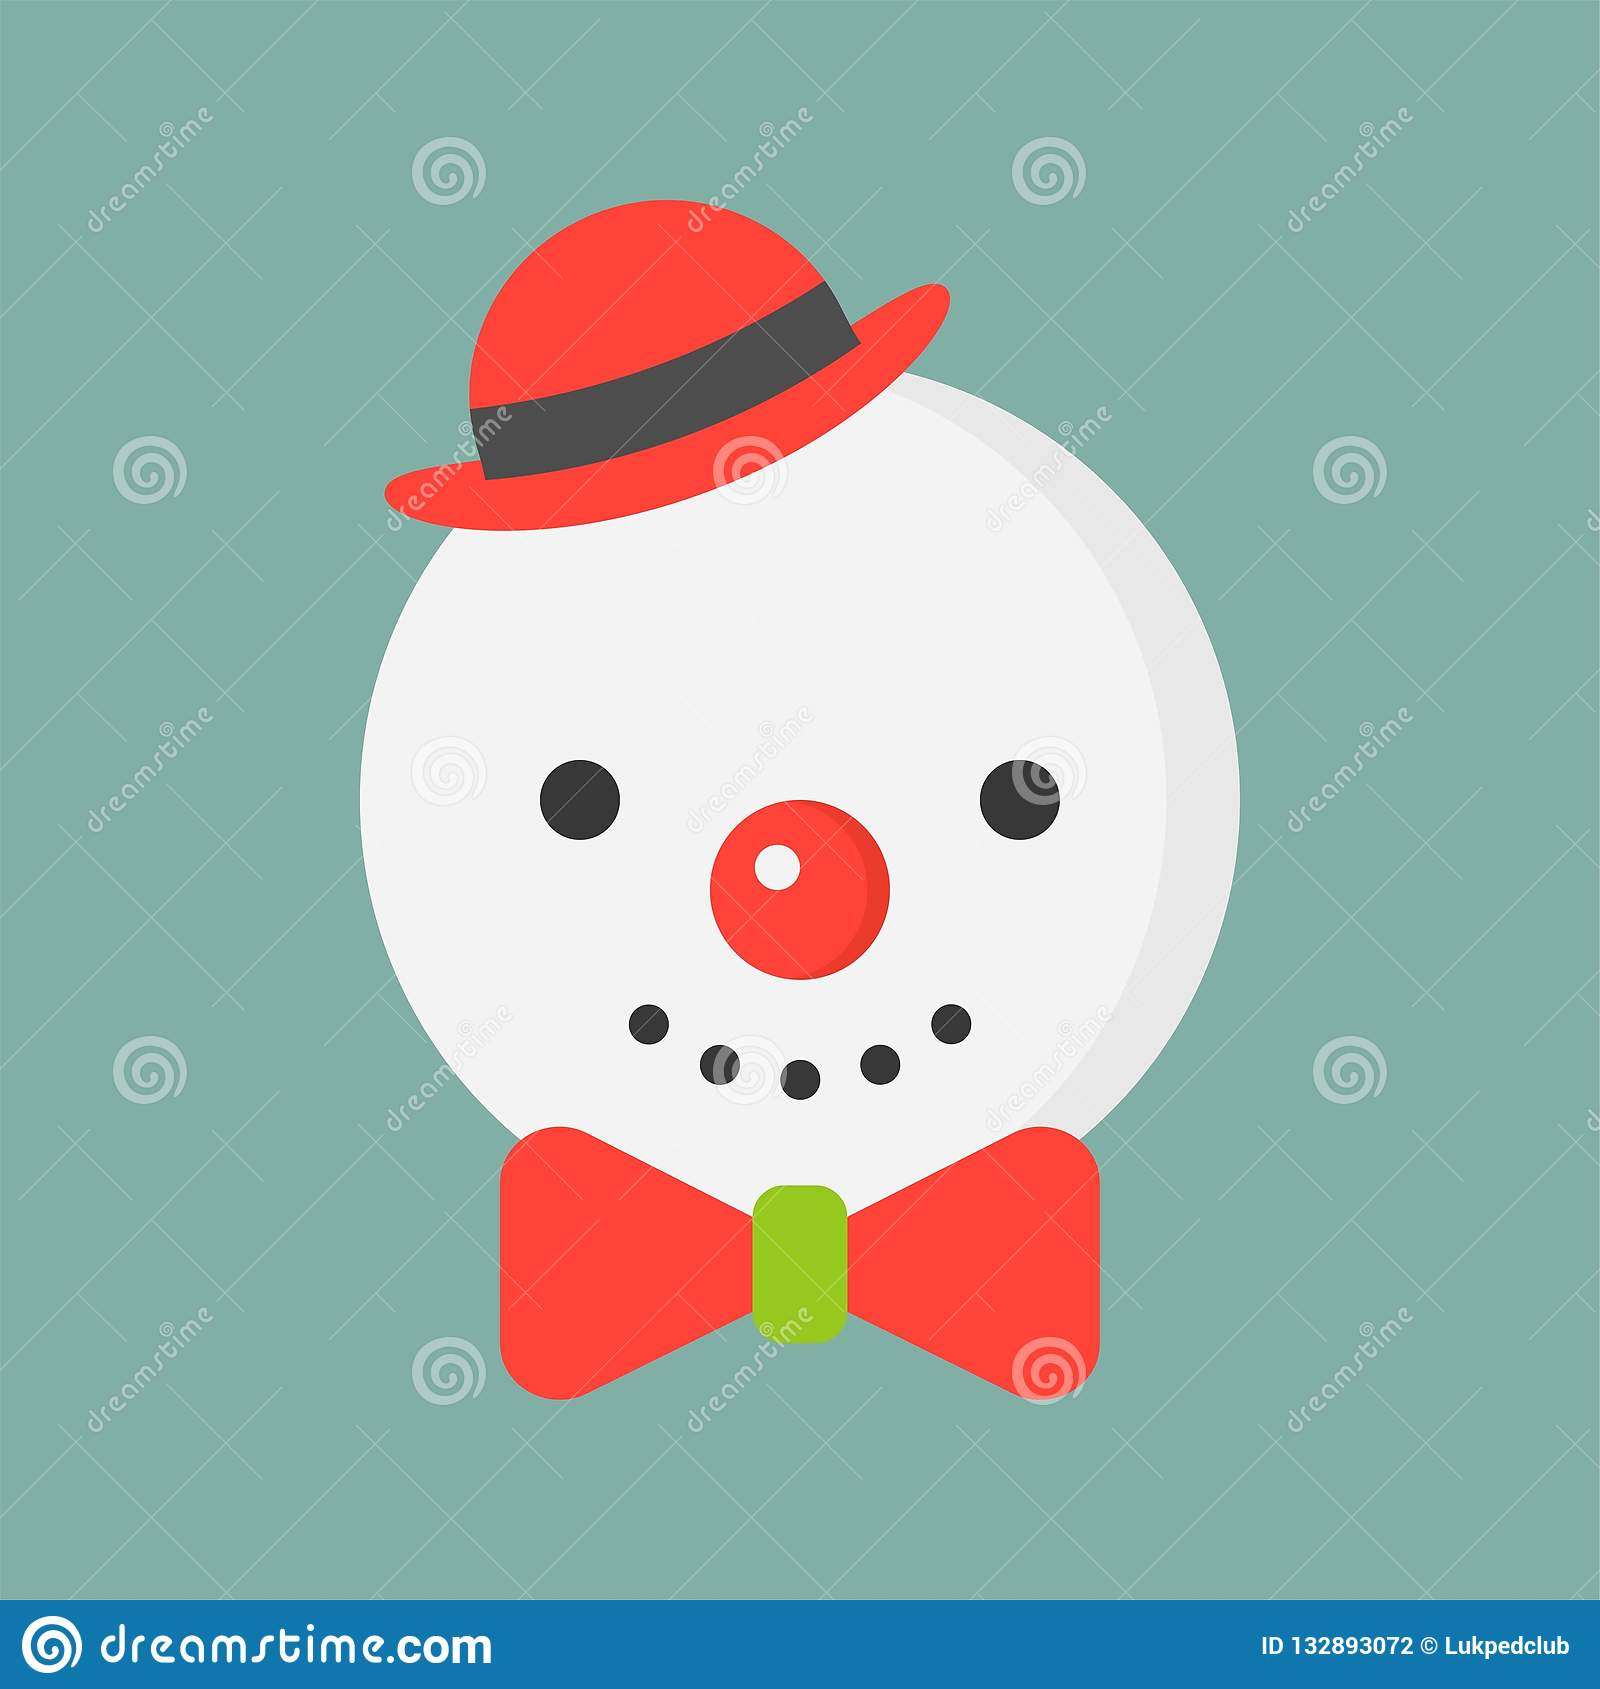 3a80e5413749d Snowman Icon In Flat Design For Use As Material In Christmas The ...